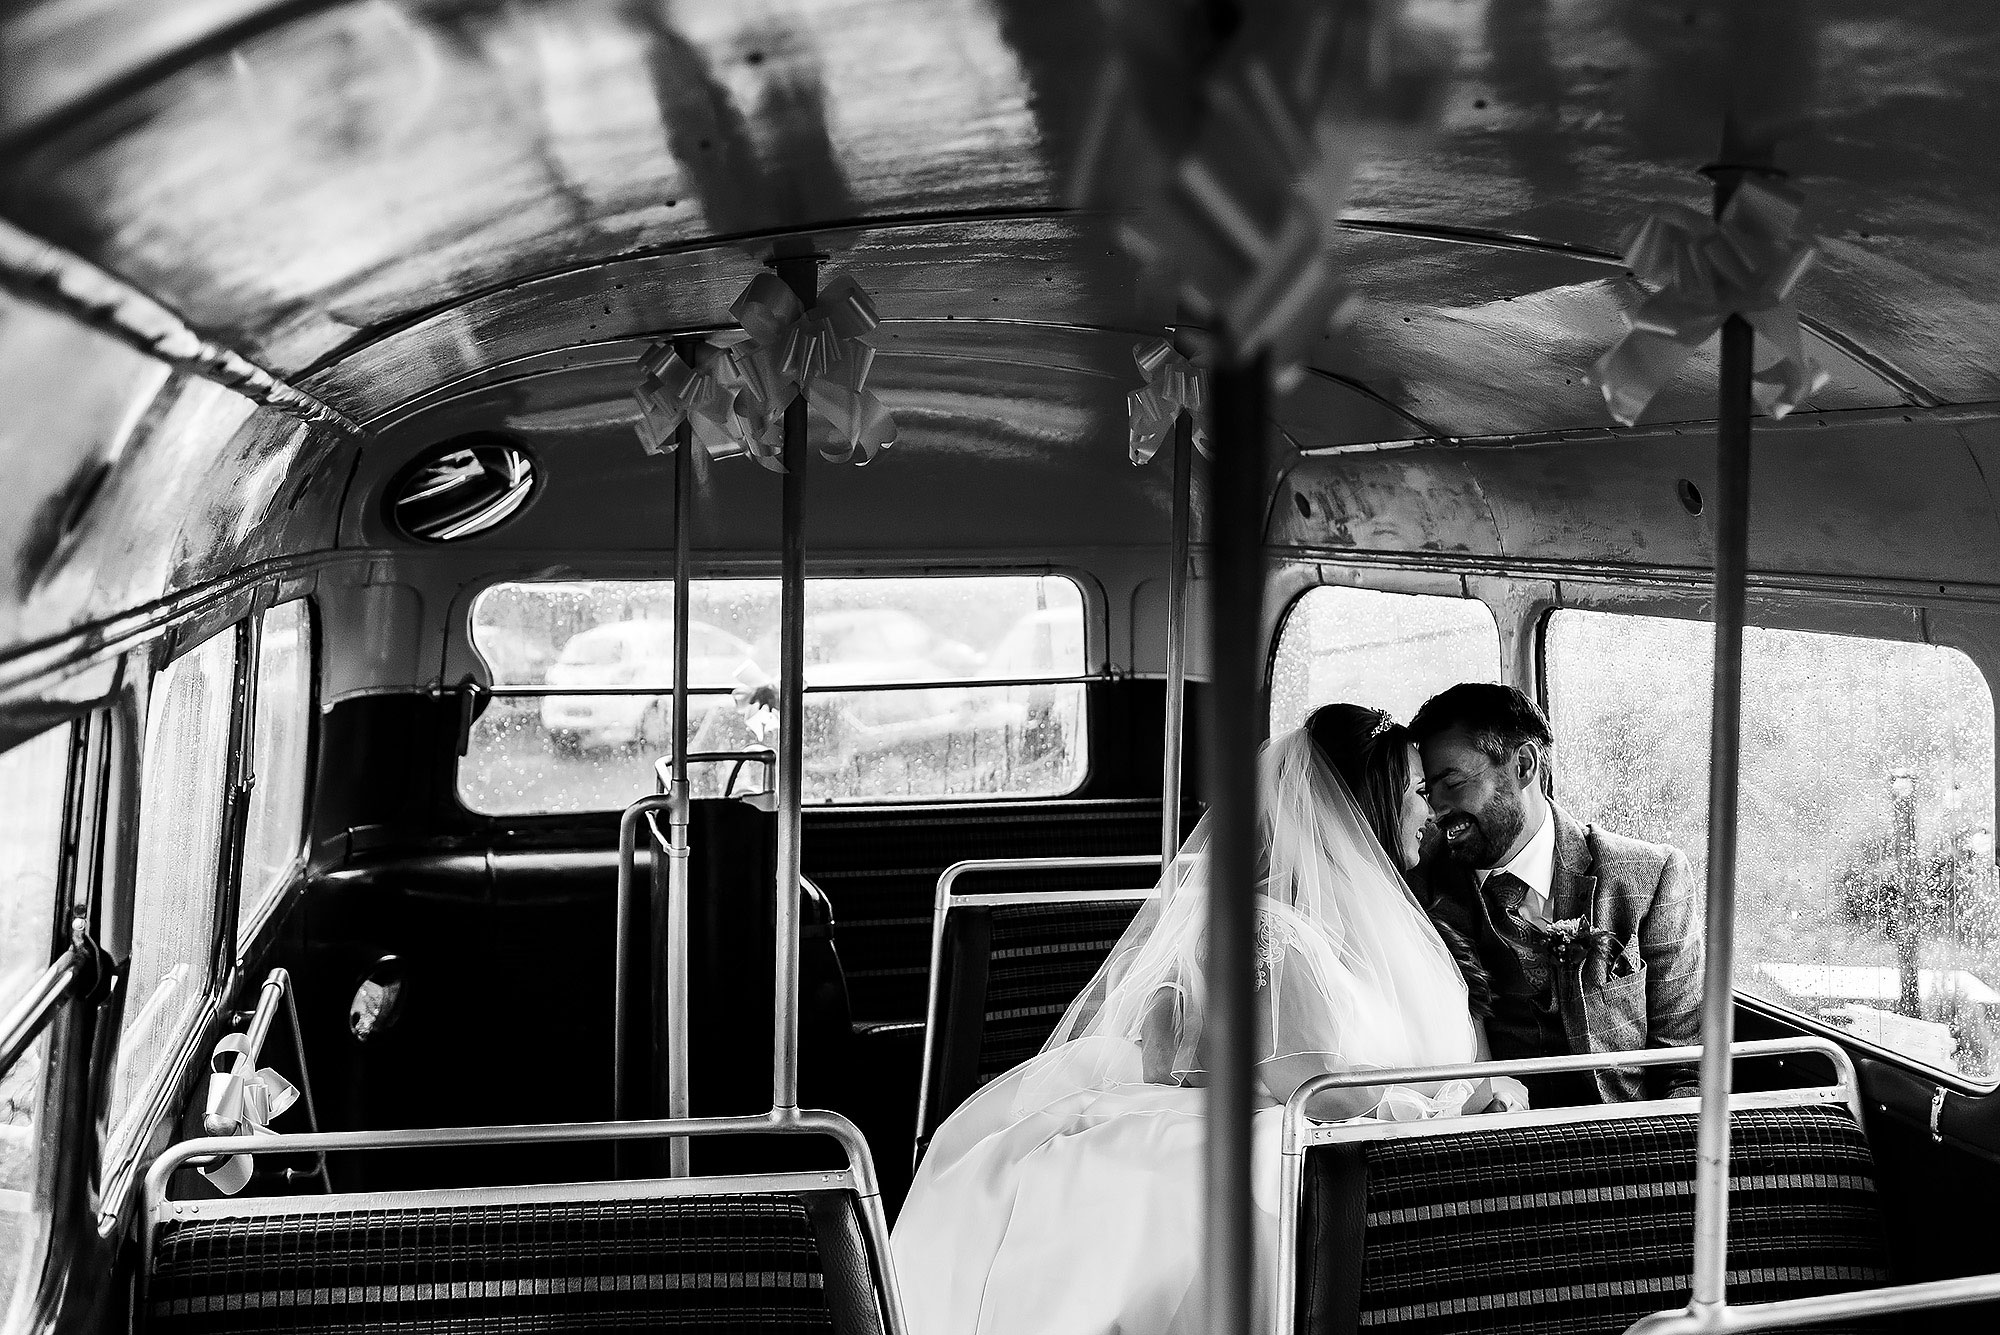 Bride and Groom enjoying a private moment on the wedding bus at the wellbeing farm | Wellbeing Farm wedding photographs by Toni Darcy Photography